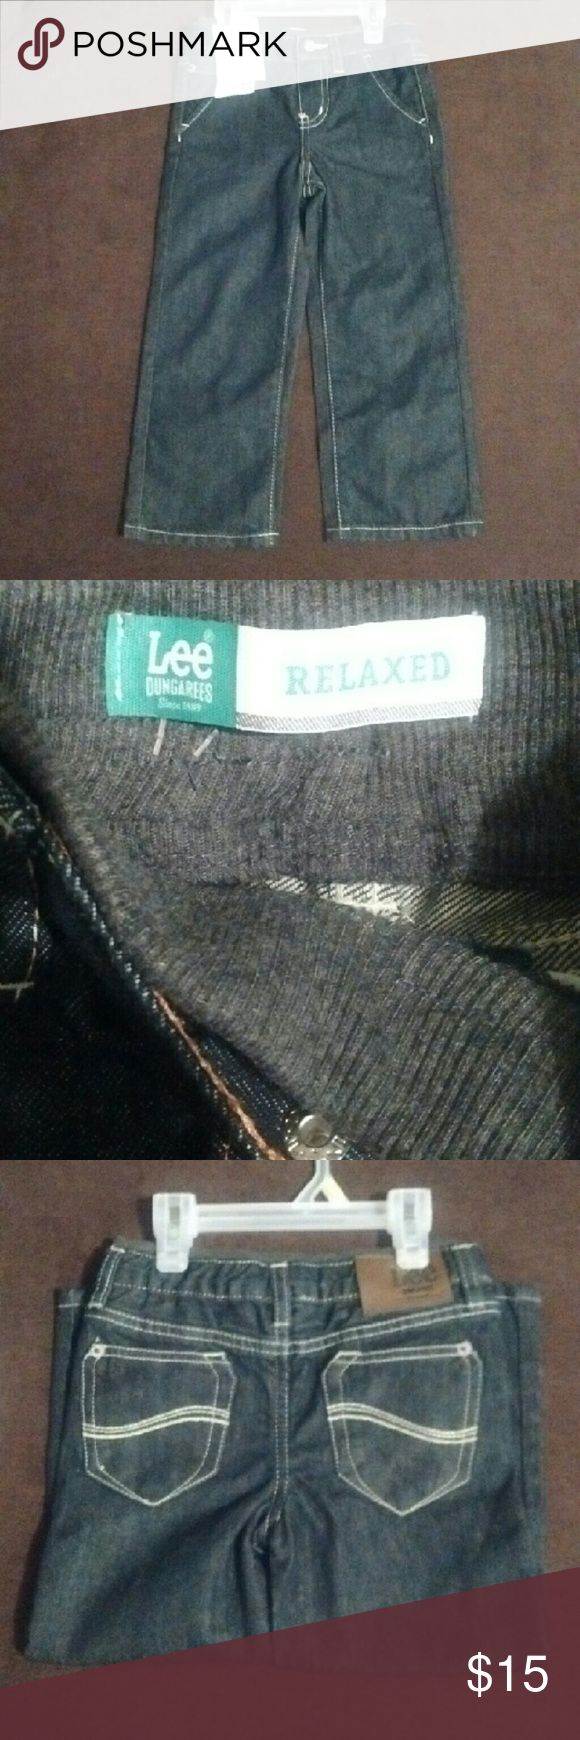 3t Blue Lee Dungarees 3t Blue Lee Dungarees. NWT. Has Jersey tyle waistband. Lee Bottoms Jeans